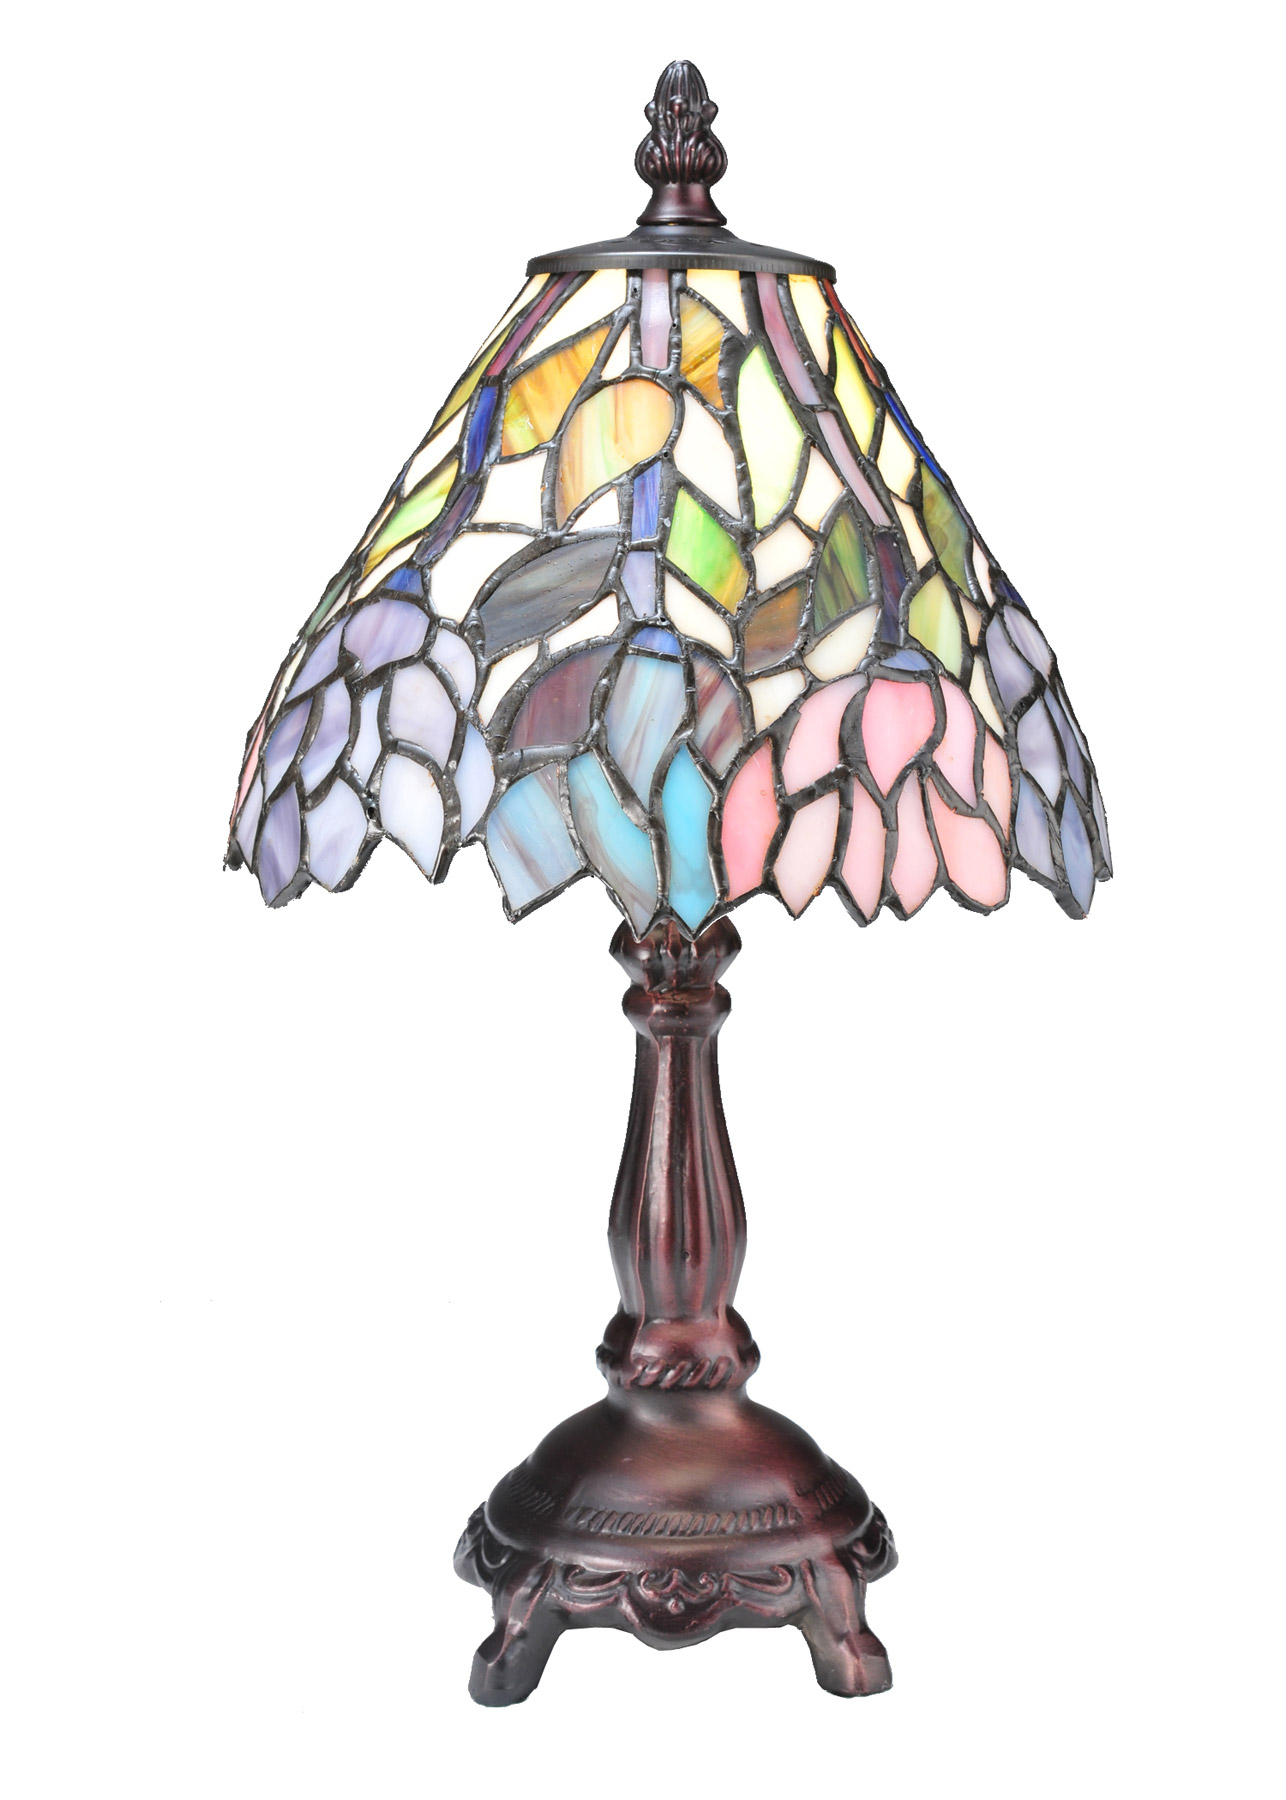 home lamps table lamps accent lamps meyda 27294. Black Bedroom Furniture Sets. Home Design Ideas